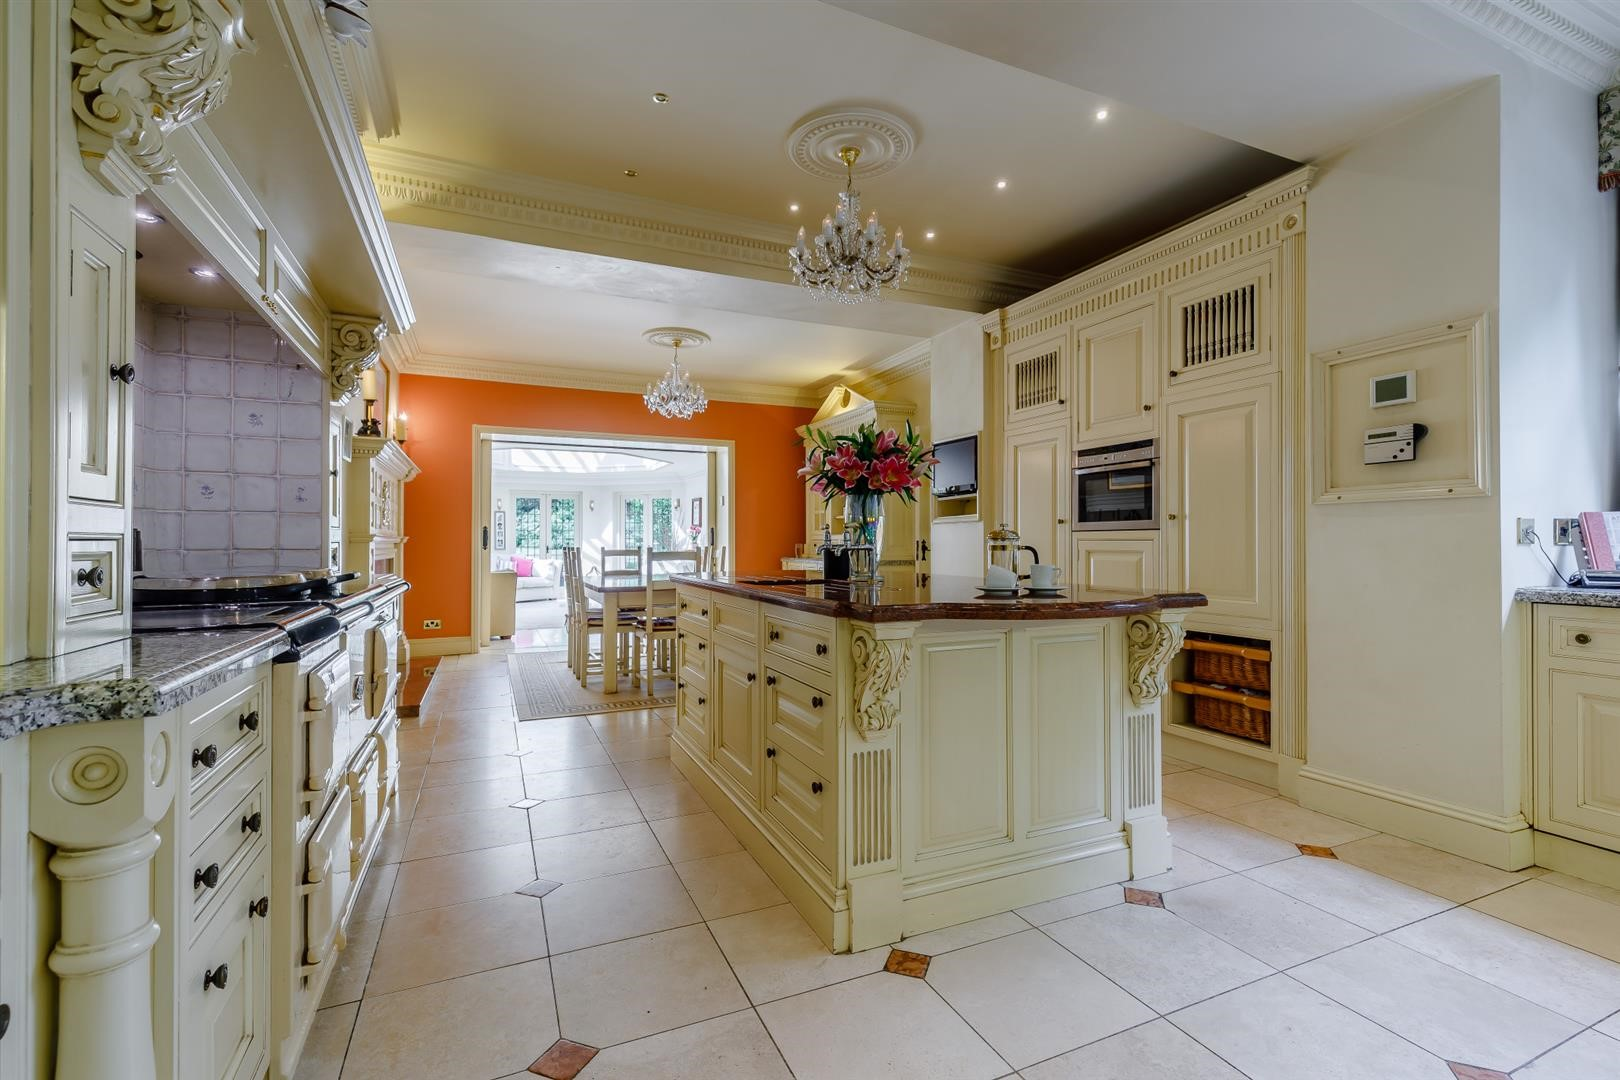 luxury bespoke Clive Christian designer kitchen and chandelier in Victorian house